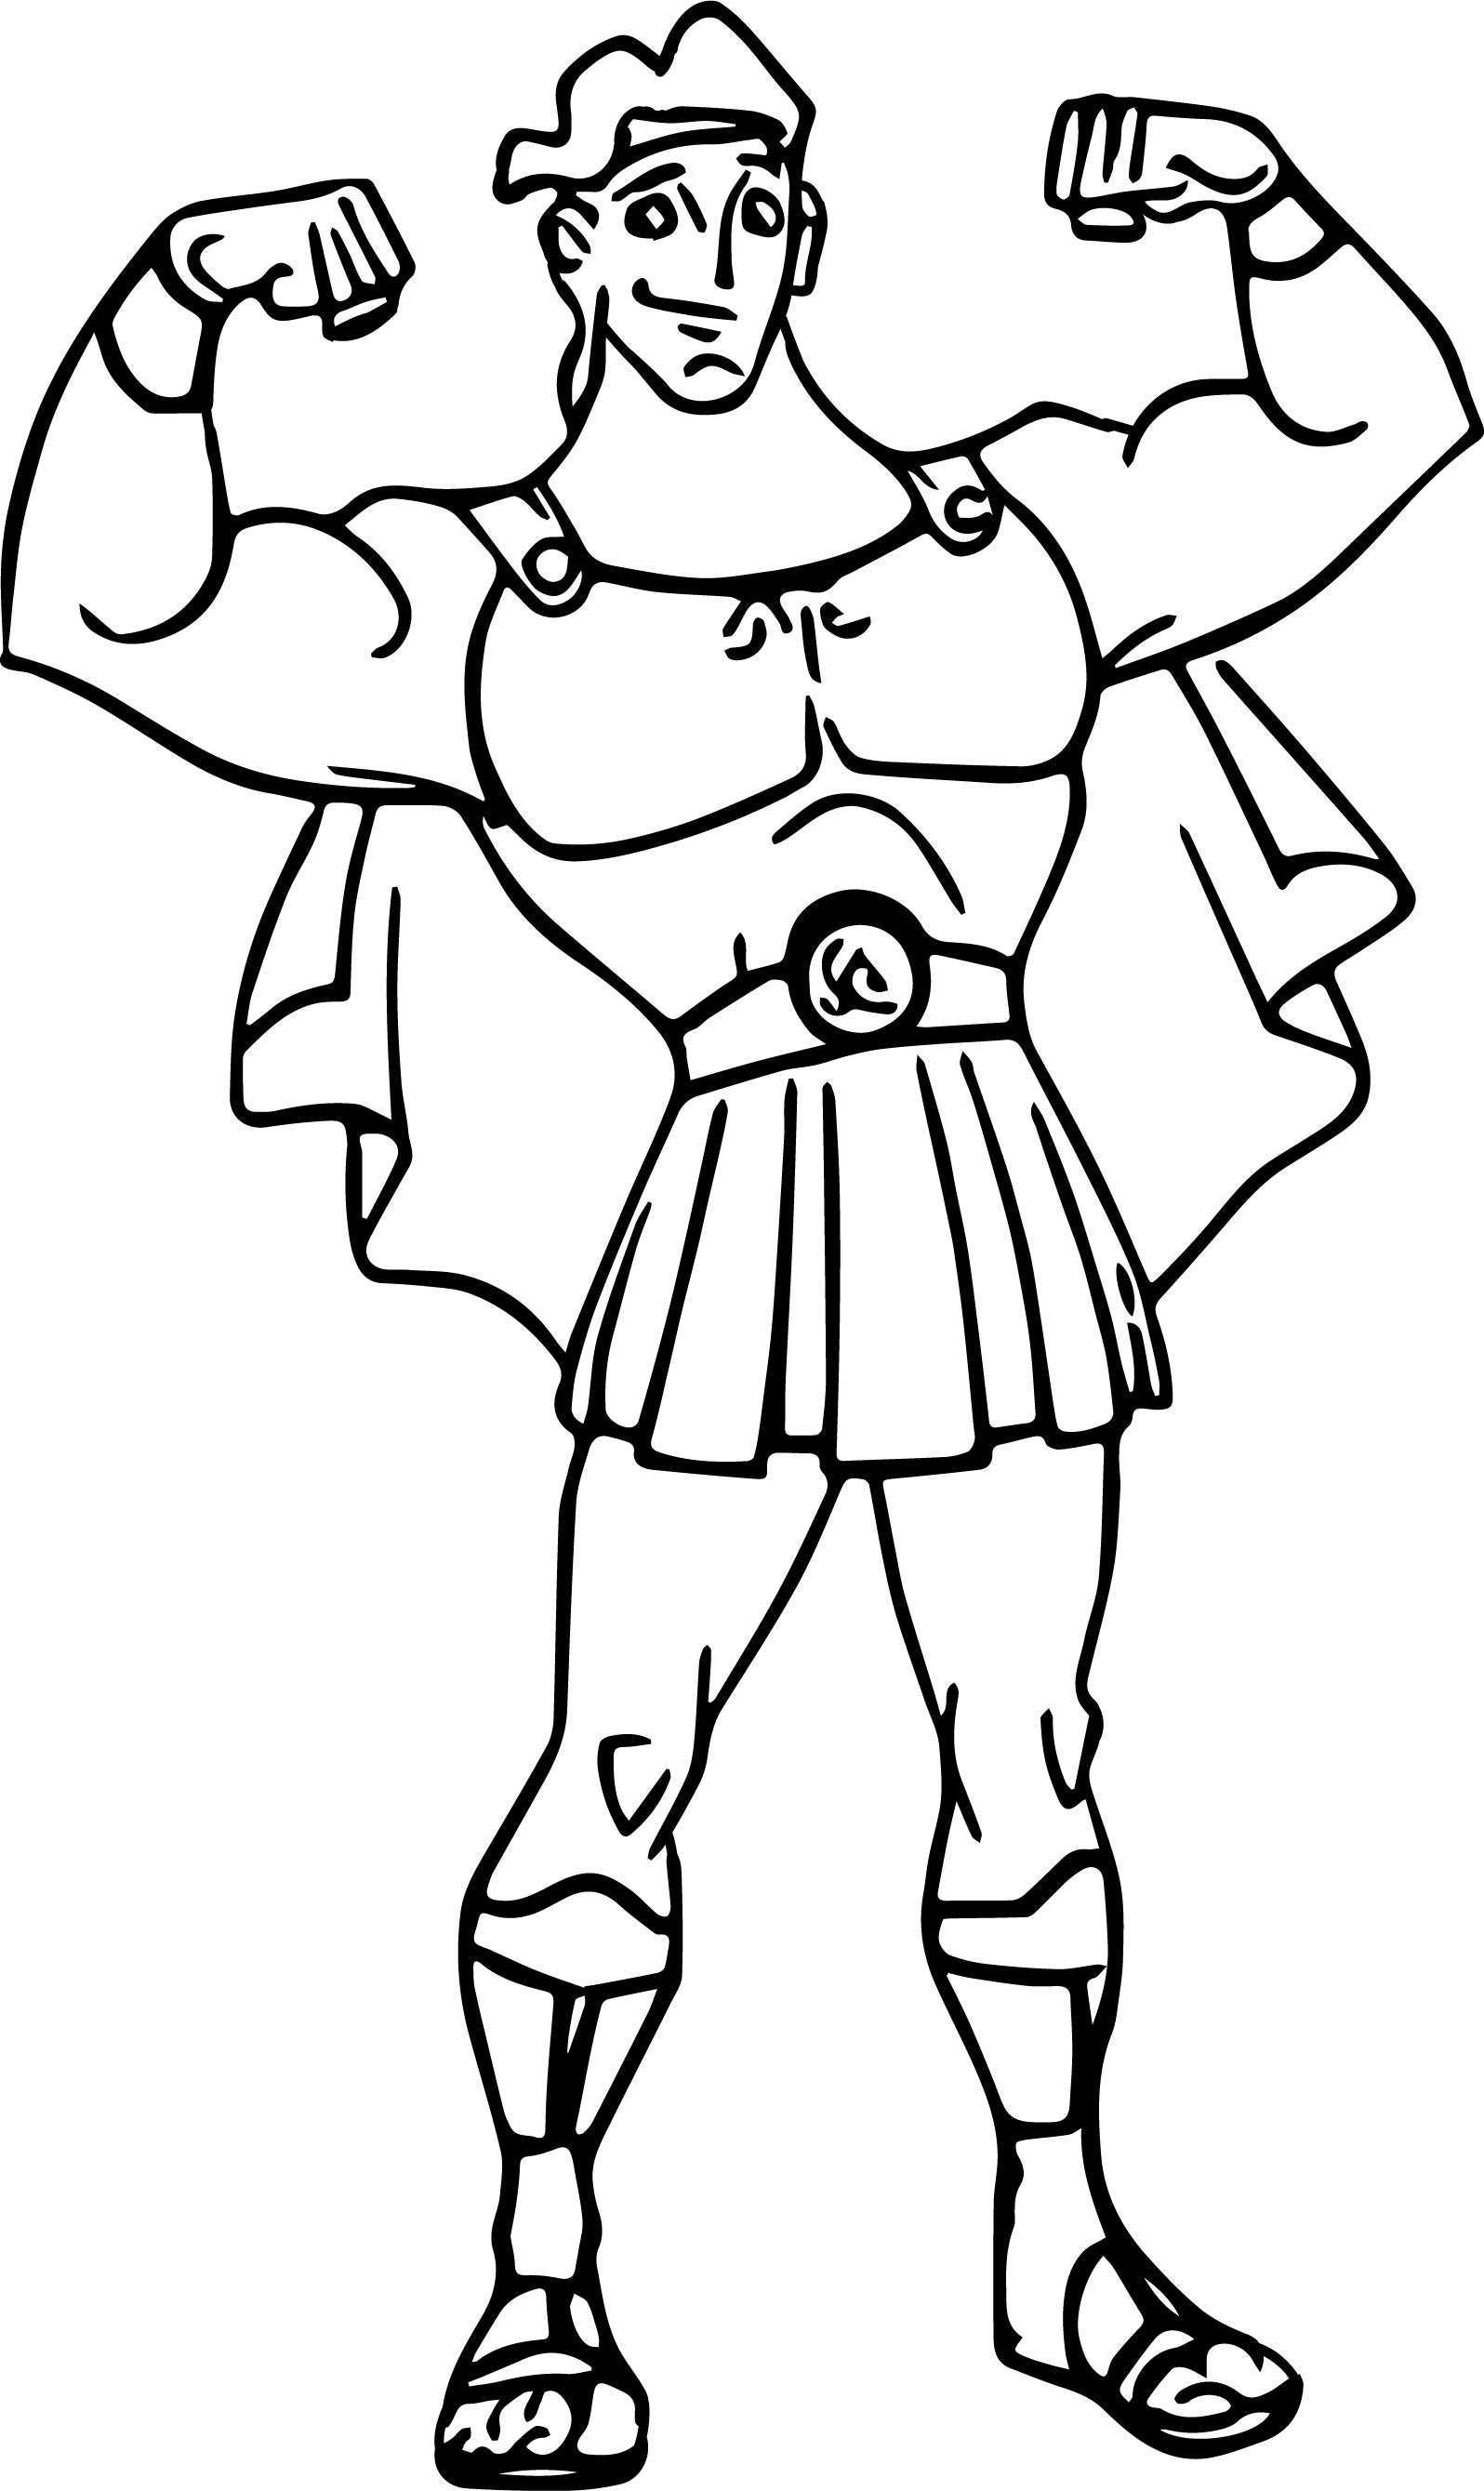 Hercules Muscles Coloring Pages